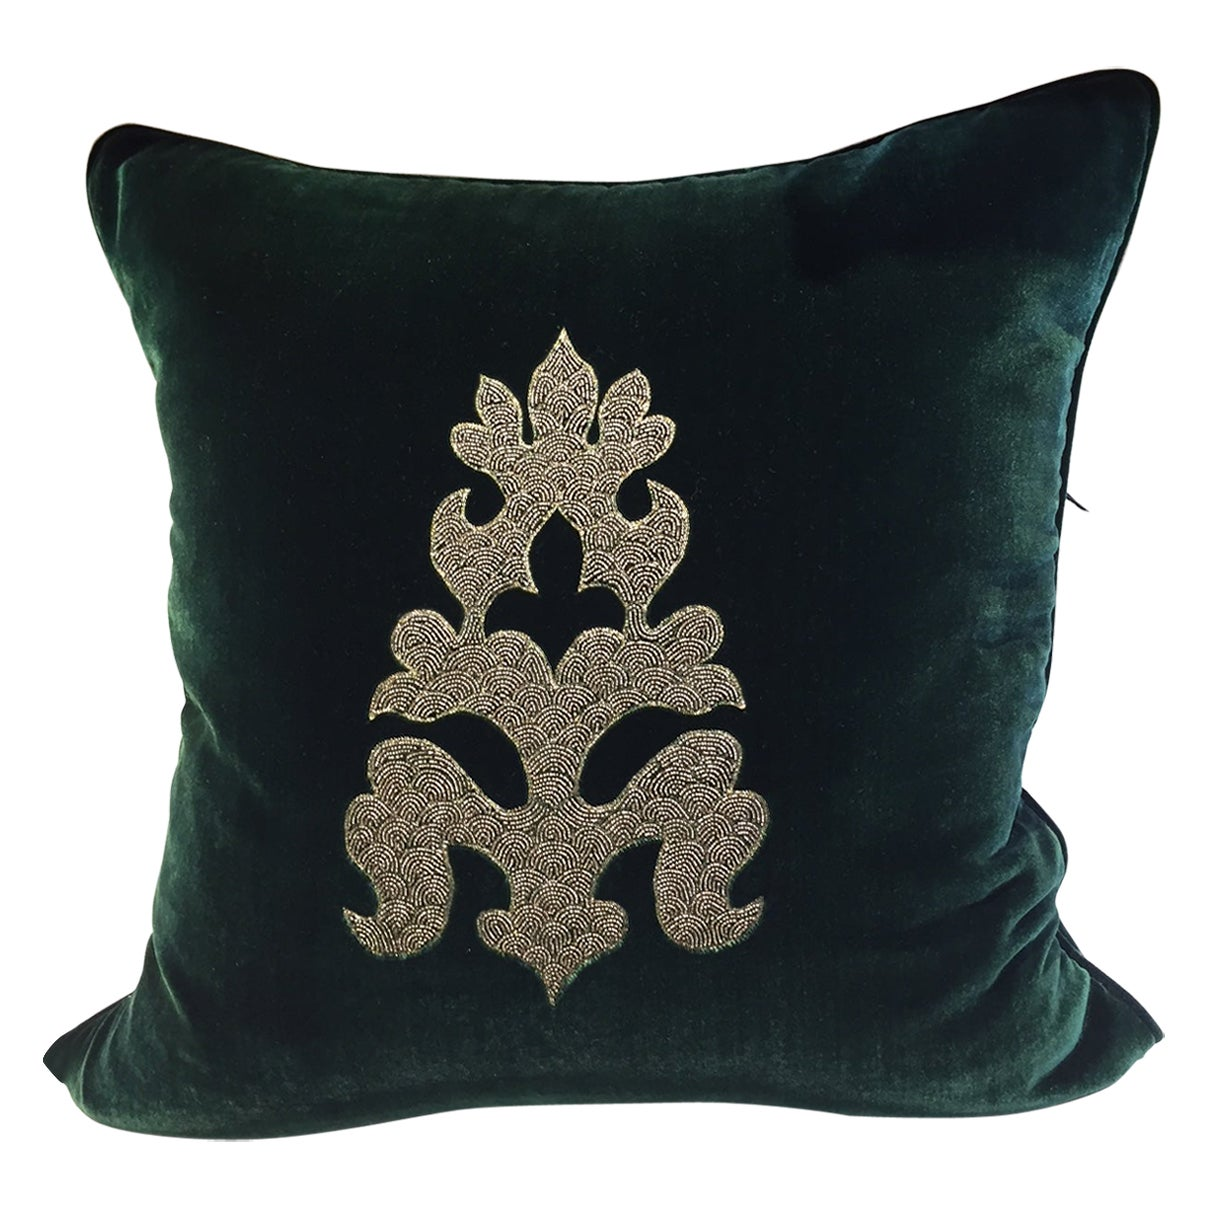 Hand Embroidered Cushion Silk Dark Green Velvet with Asian Ornament